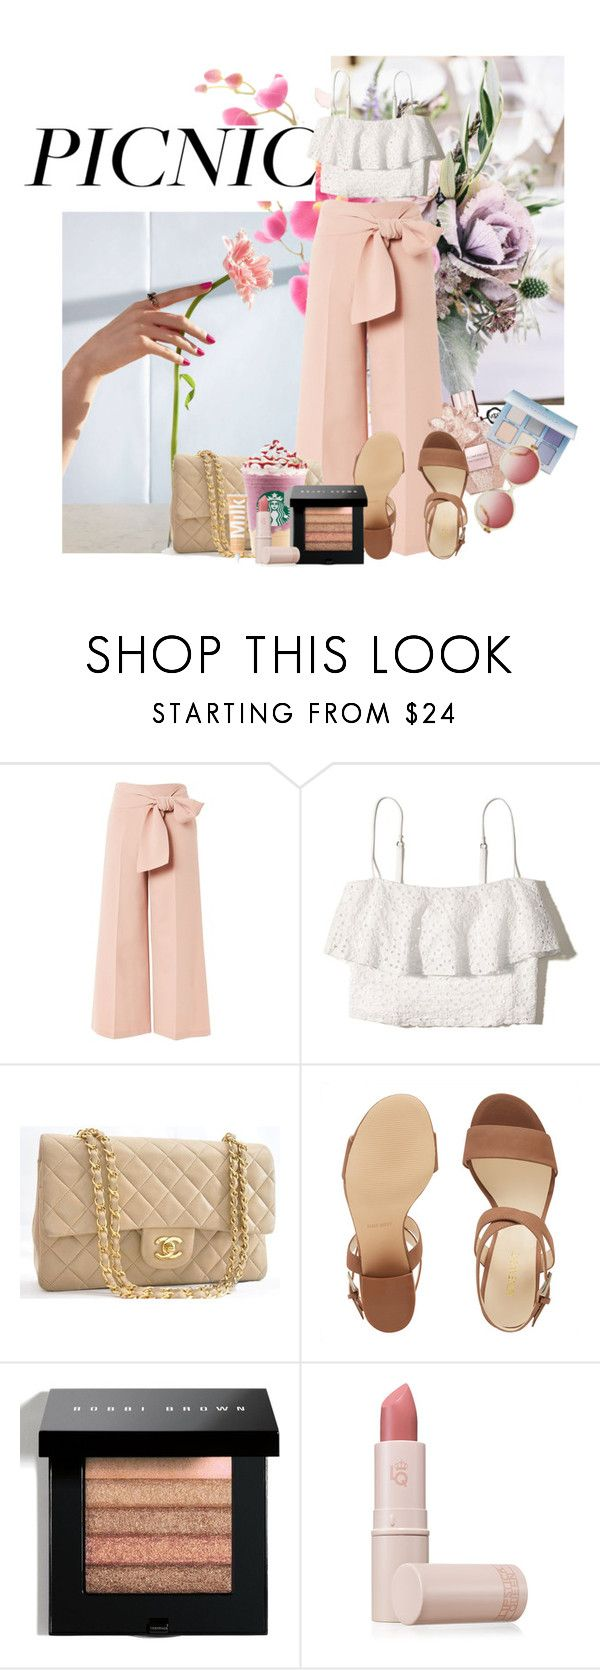 """Picnic In The Park 16 #Contest"" by swagurl2594 ❤ liked on Polyvore featuring Topshop, Hollister Co., Chanel, Nine West, Bobbi Brown Cosmetics and Lipstick Queen"